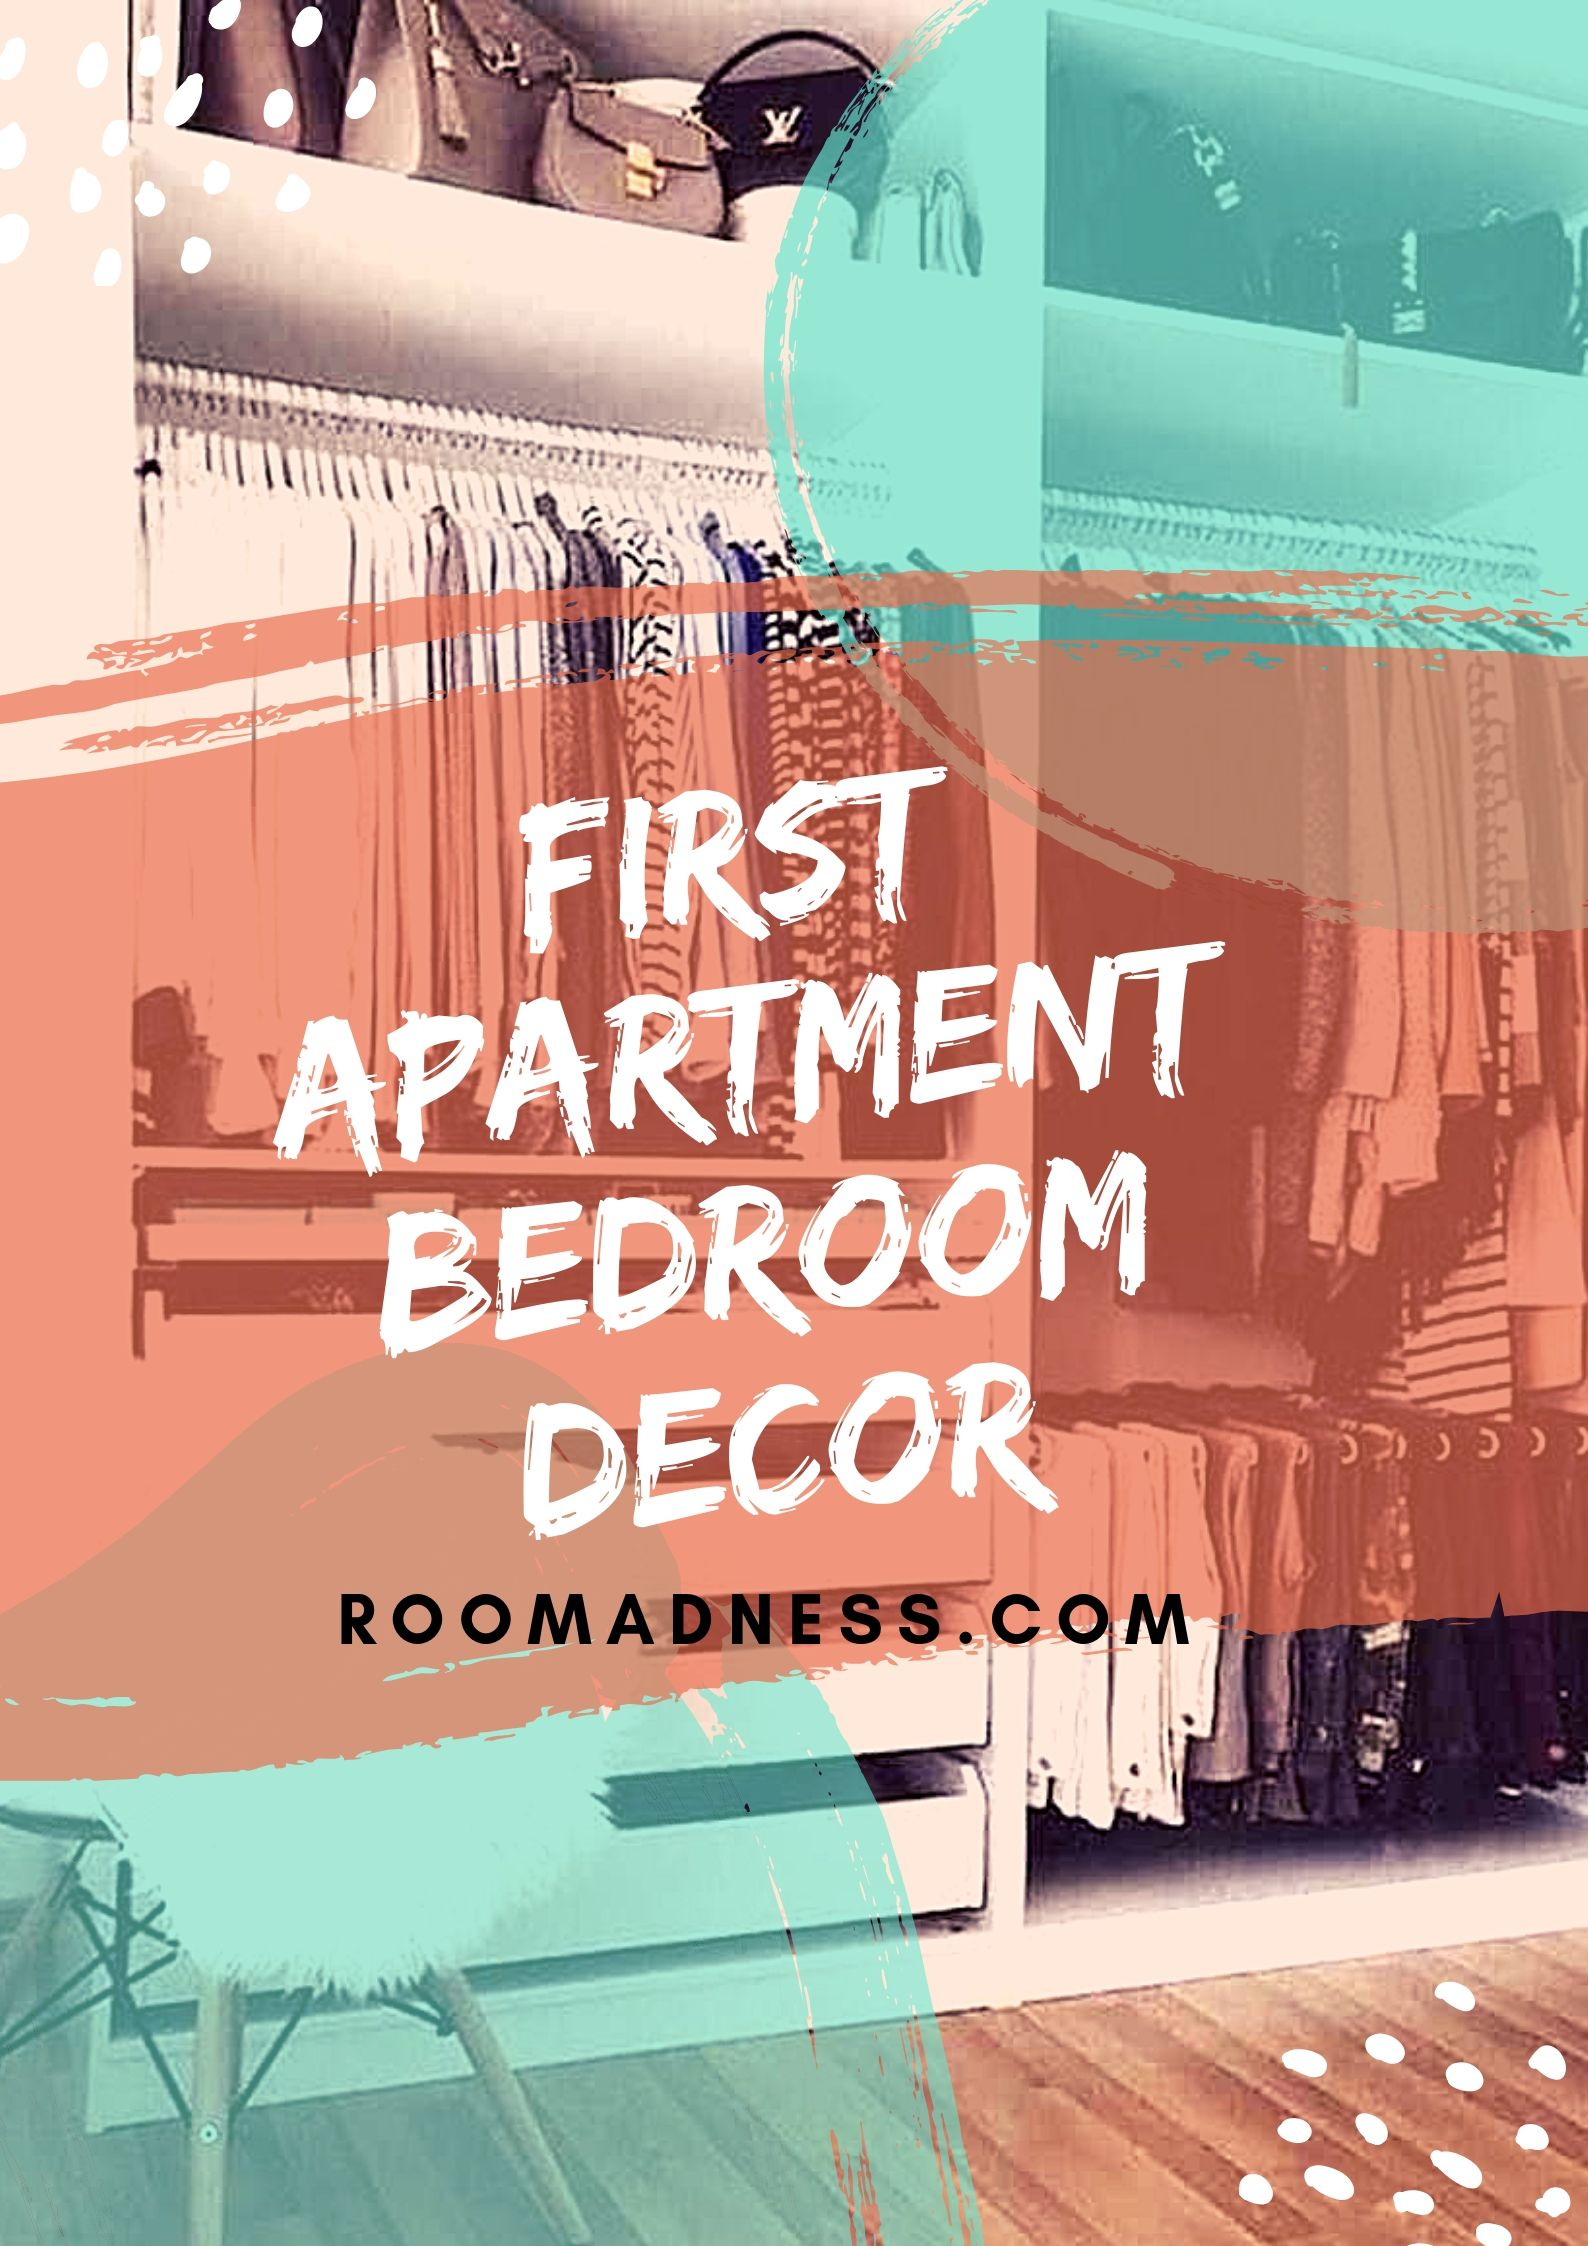 First apartment bedroom decor